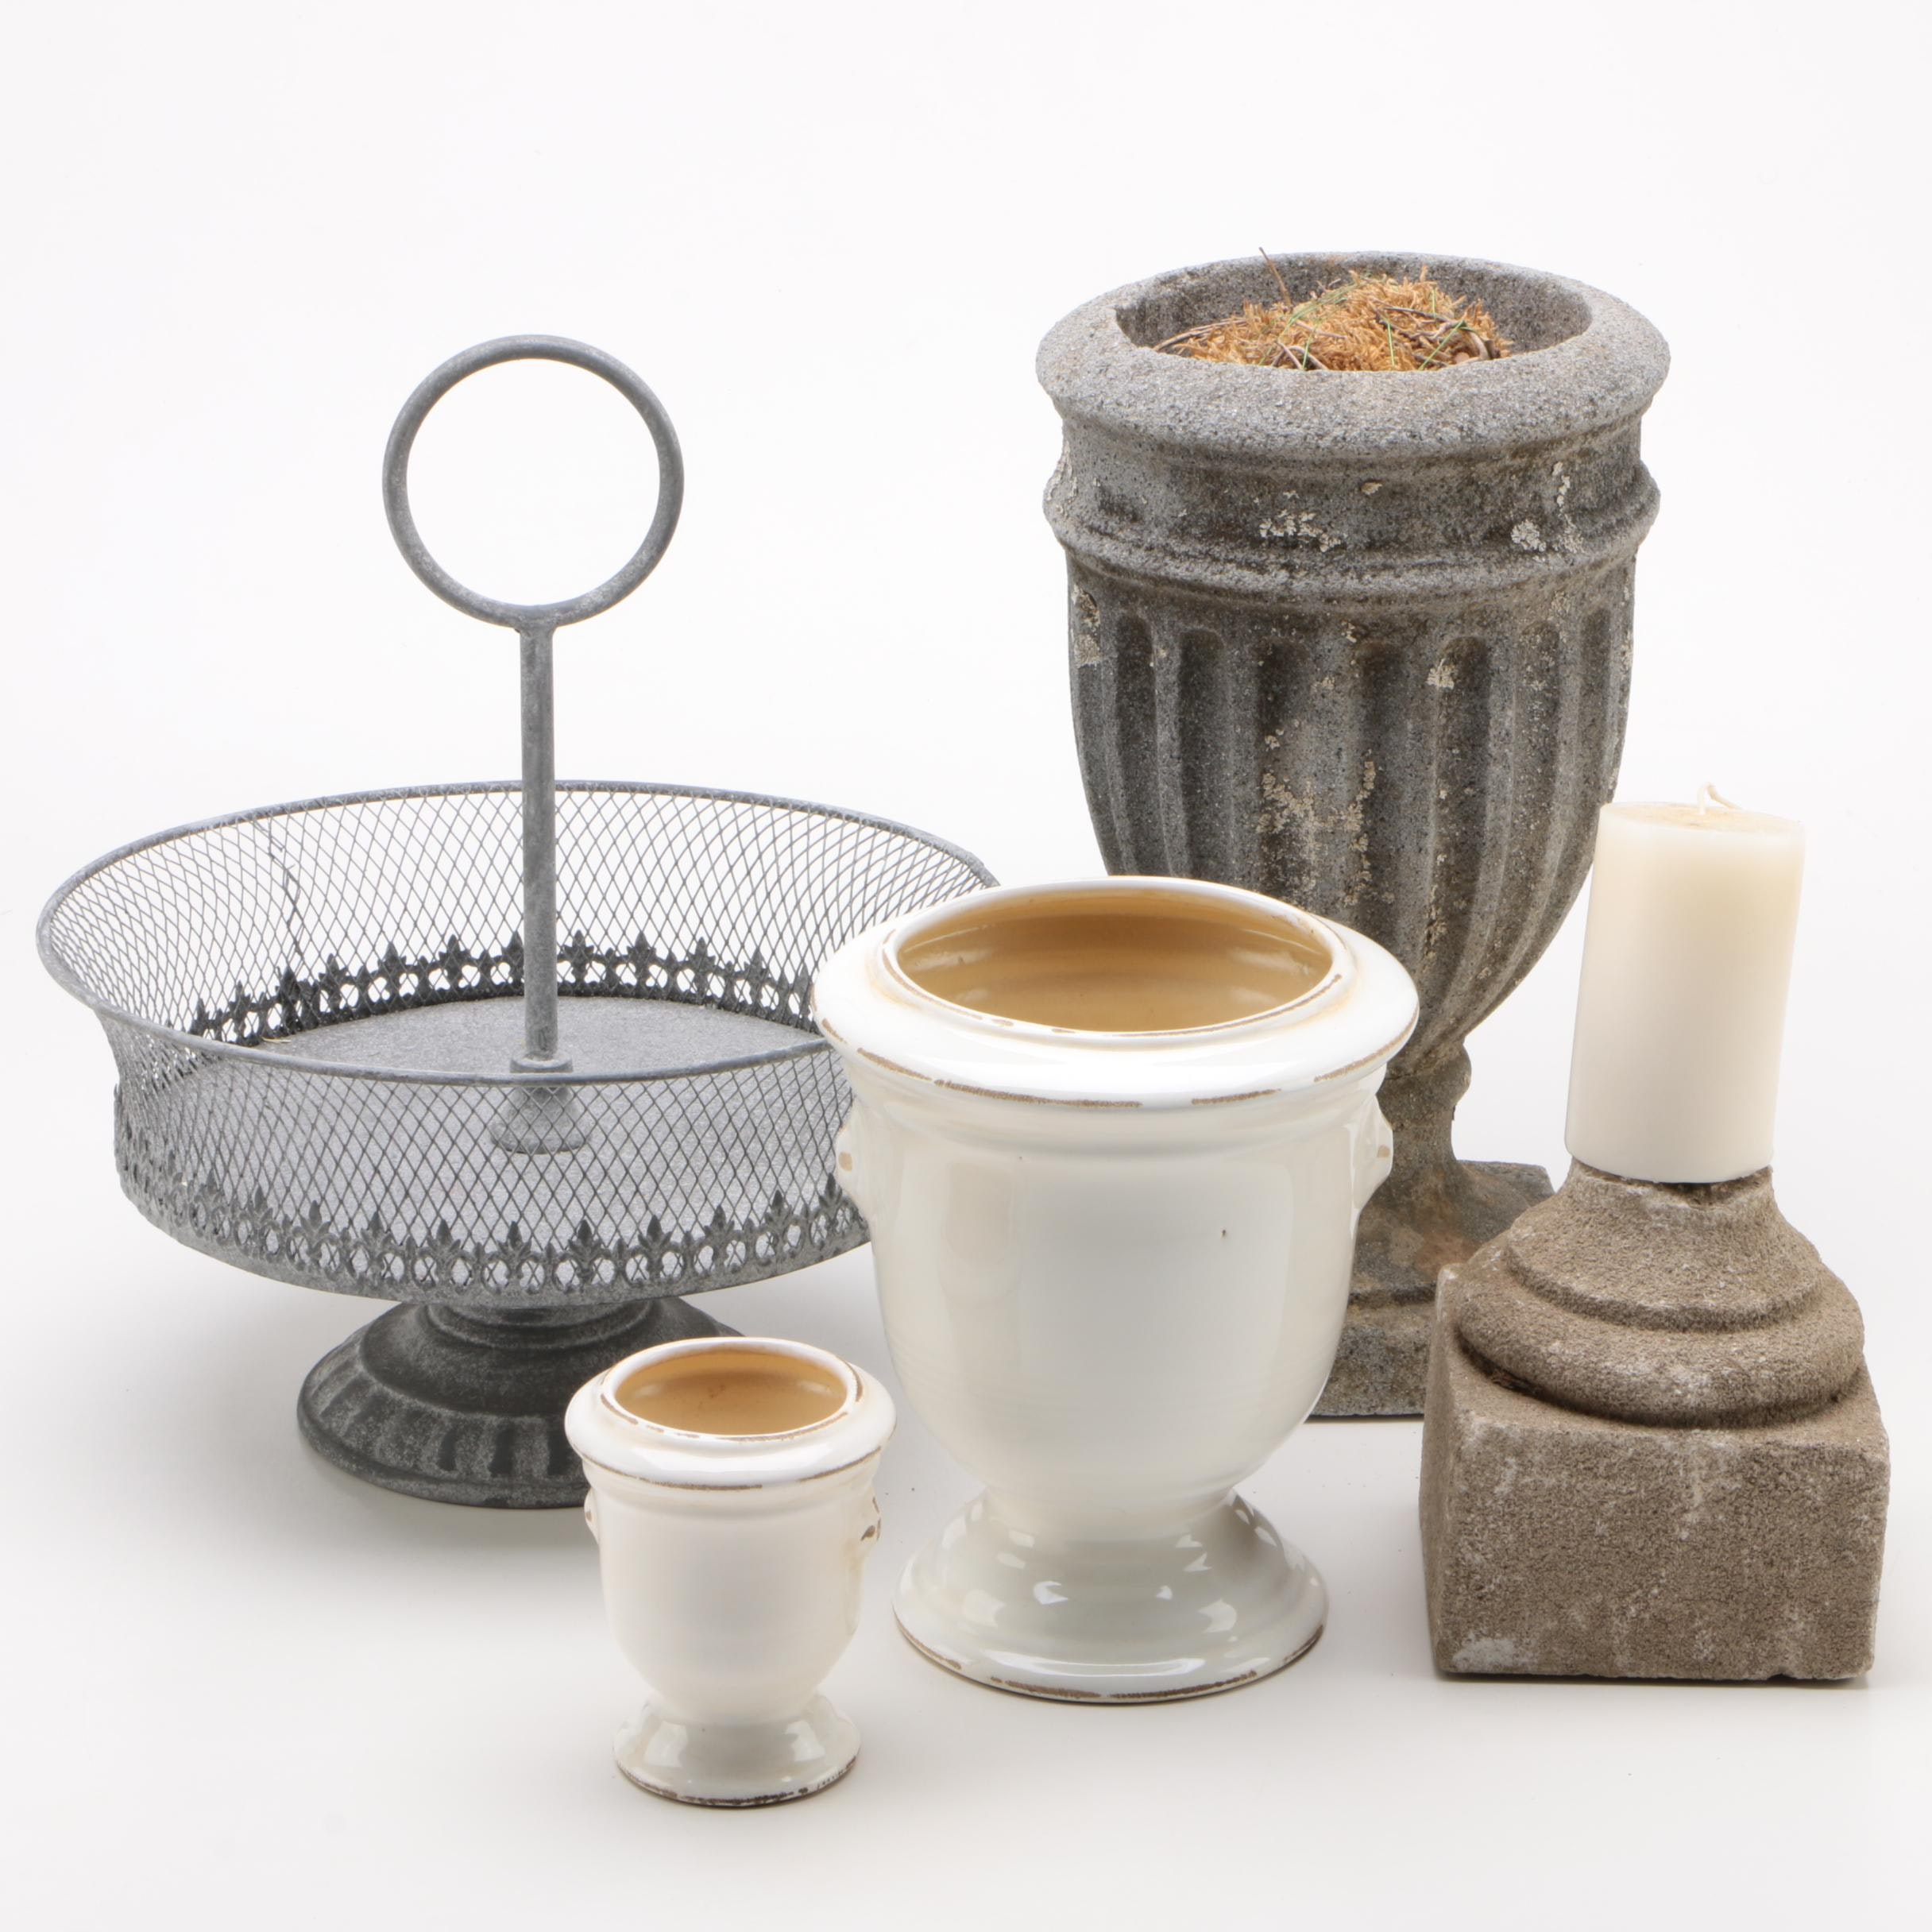 Stone and Ceramic Planters, Wire Pedestal Basket, and Stone Candle Holder